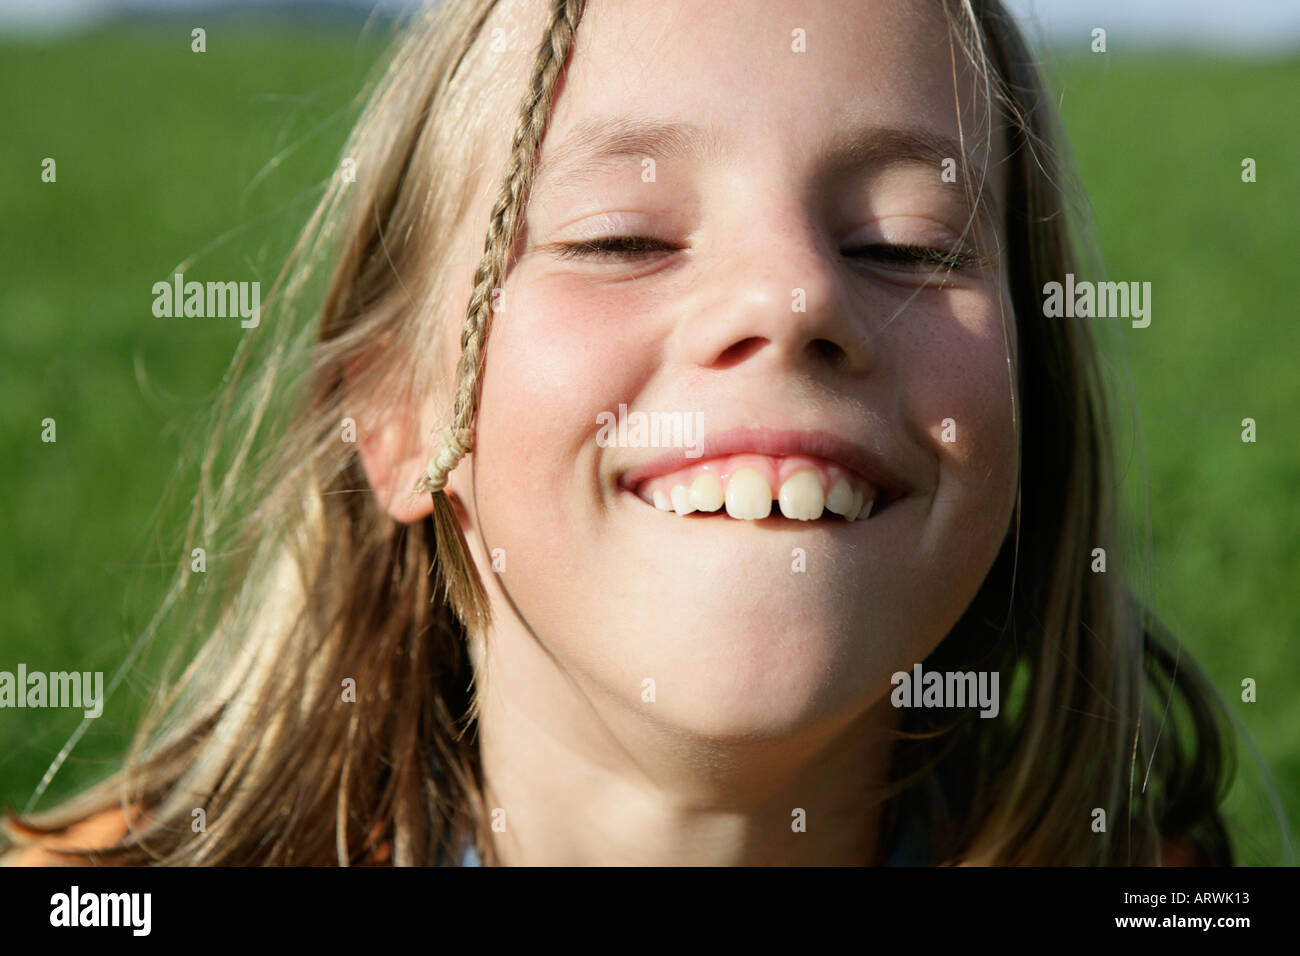 Young blonde girls showing her teeth - Stock Image